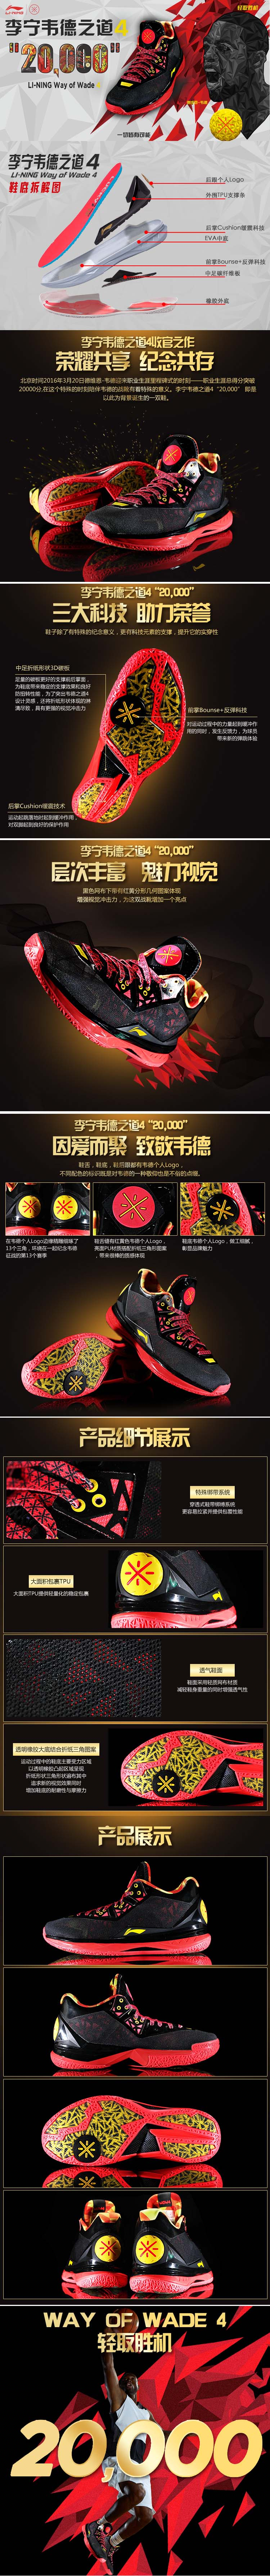 "Li-Ning WoW4 Way of Wade 4 ""City Pack"" Premium Basketball Shoes"